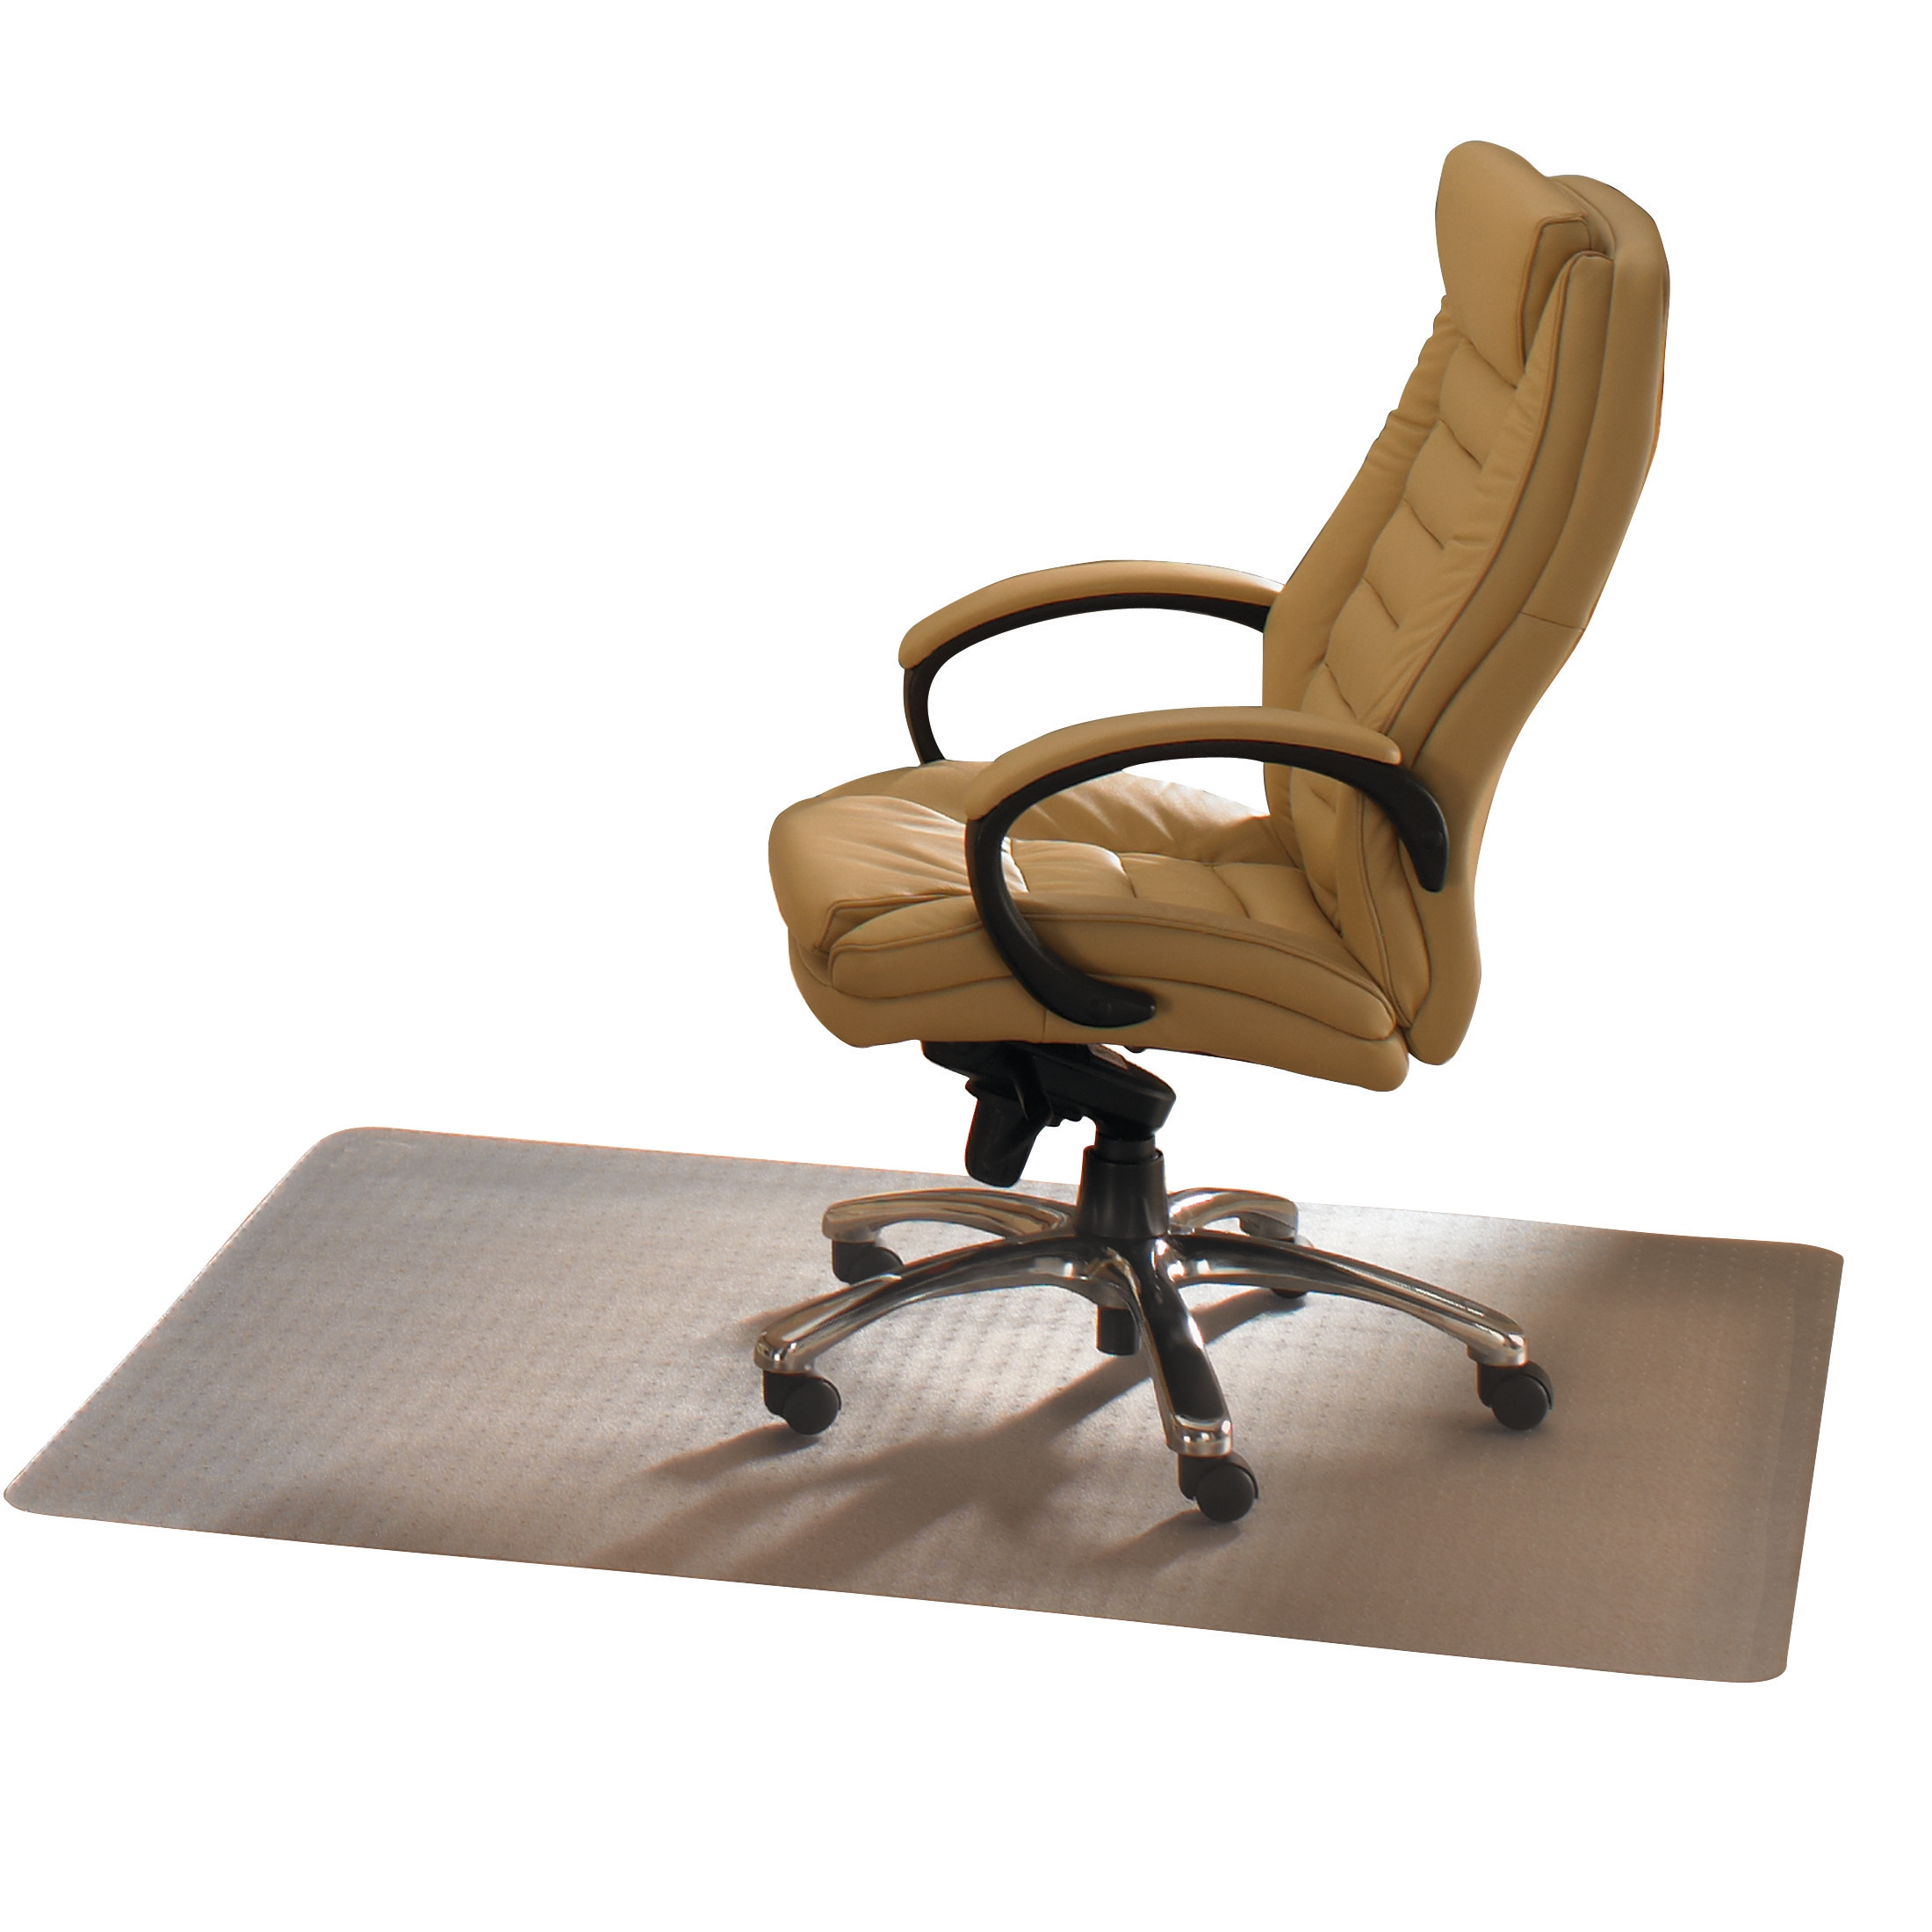 Image for Cleartex Advantagemat Chair Mat For Hard Floor Protection 1200x900mm Clear Ref FCPF129225EV